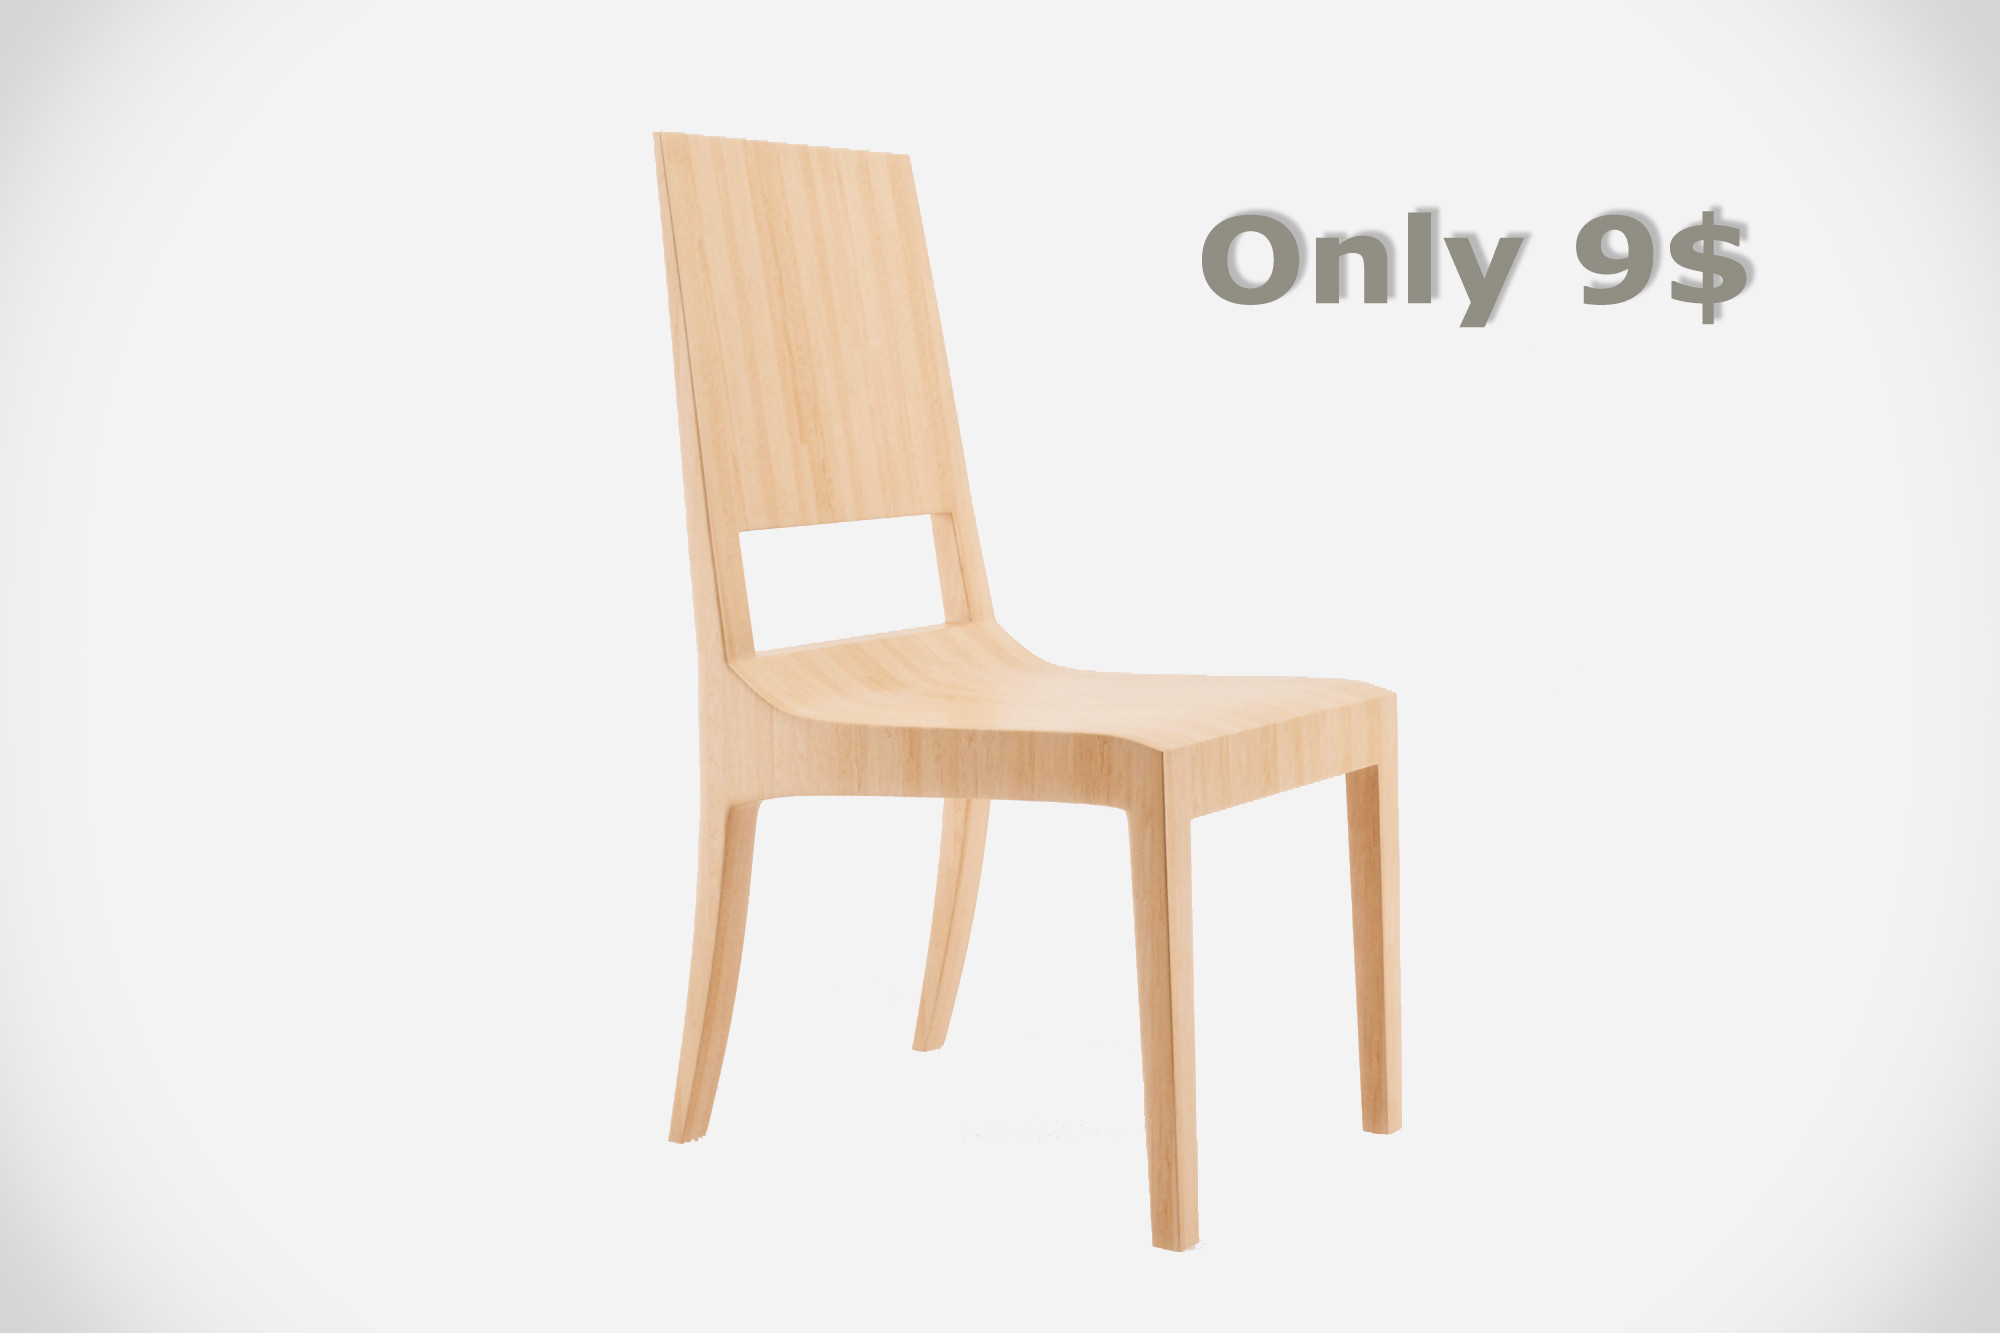 chair_render1_final2.jpg